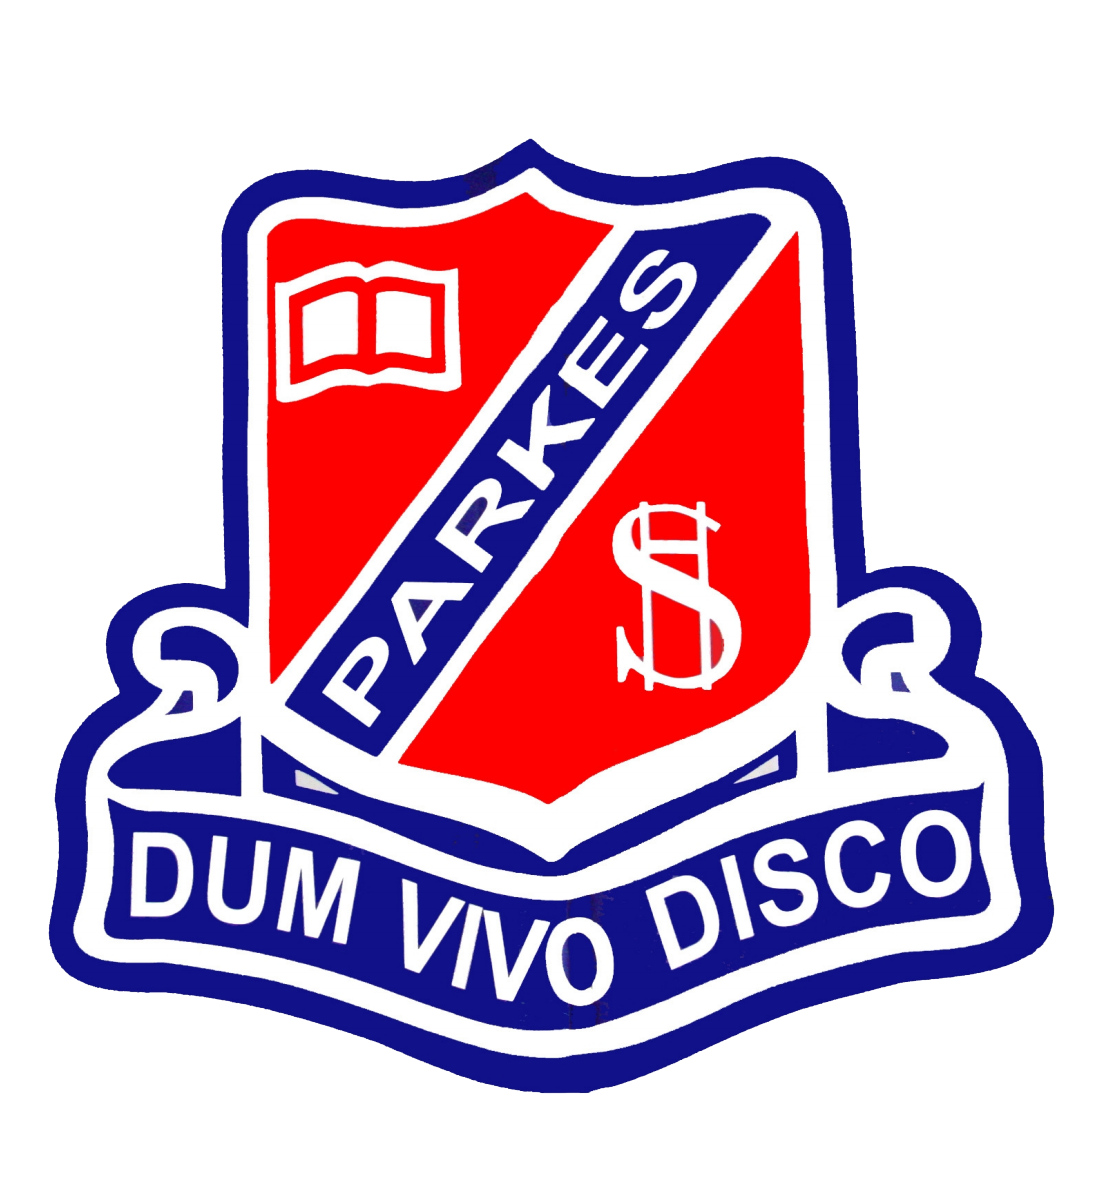 Parkes High School logo